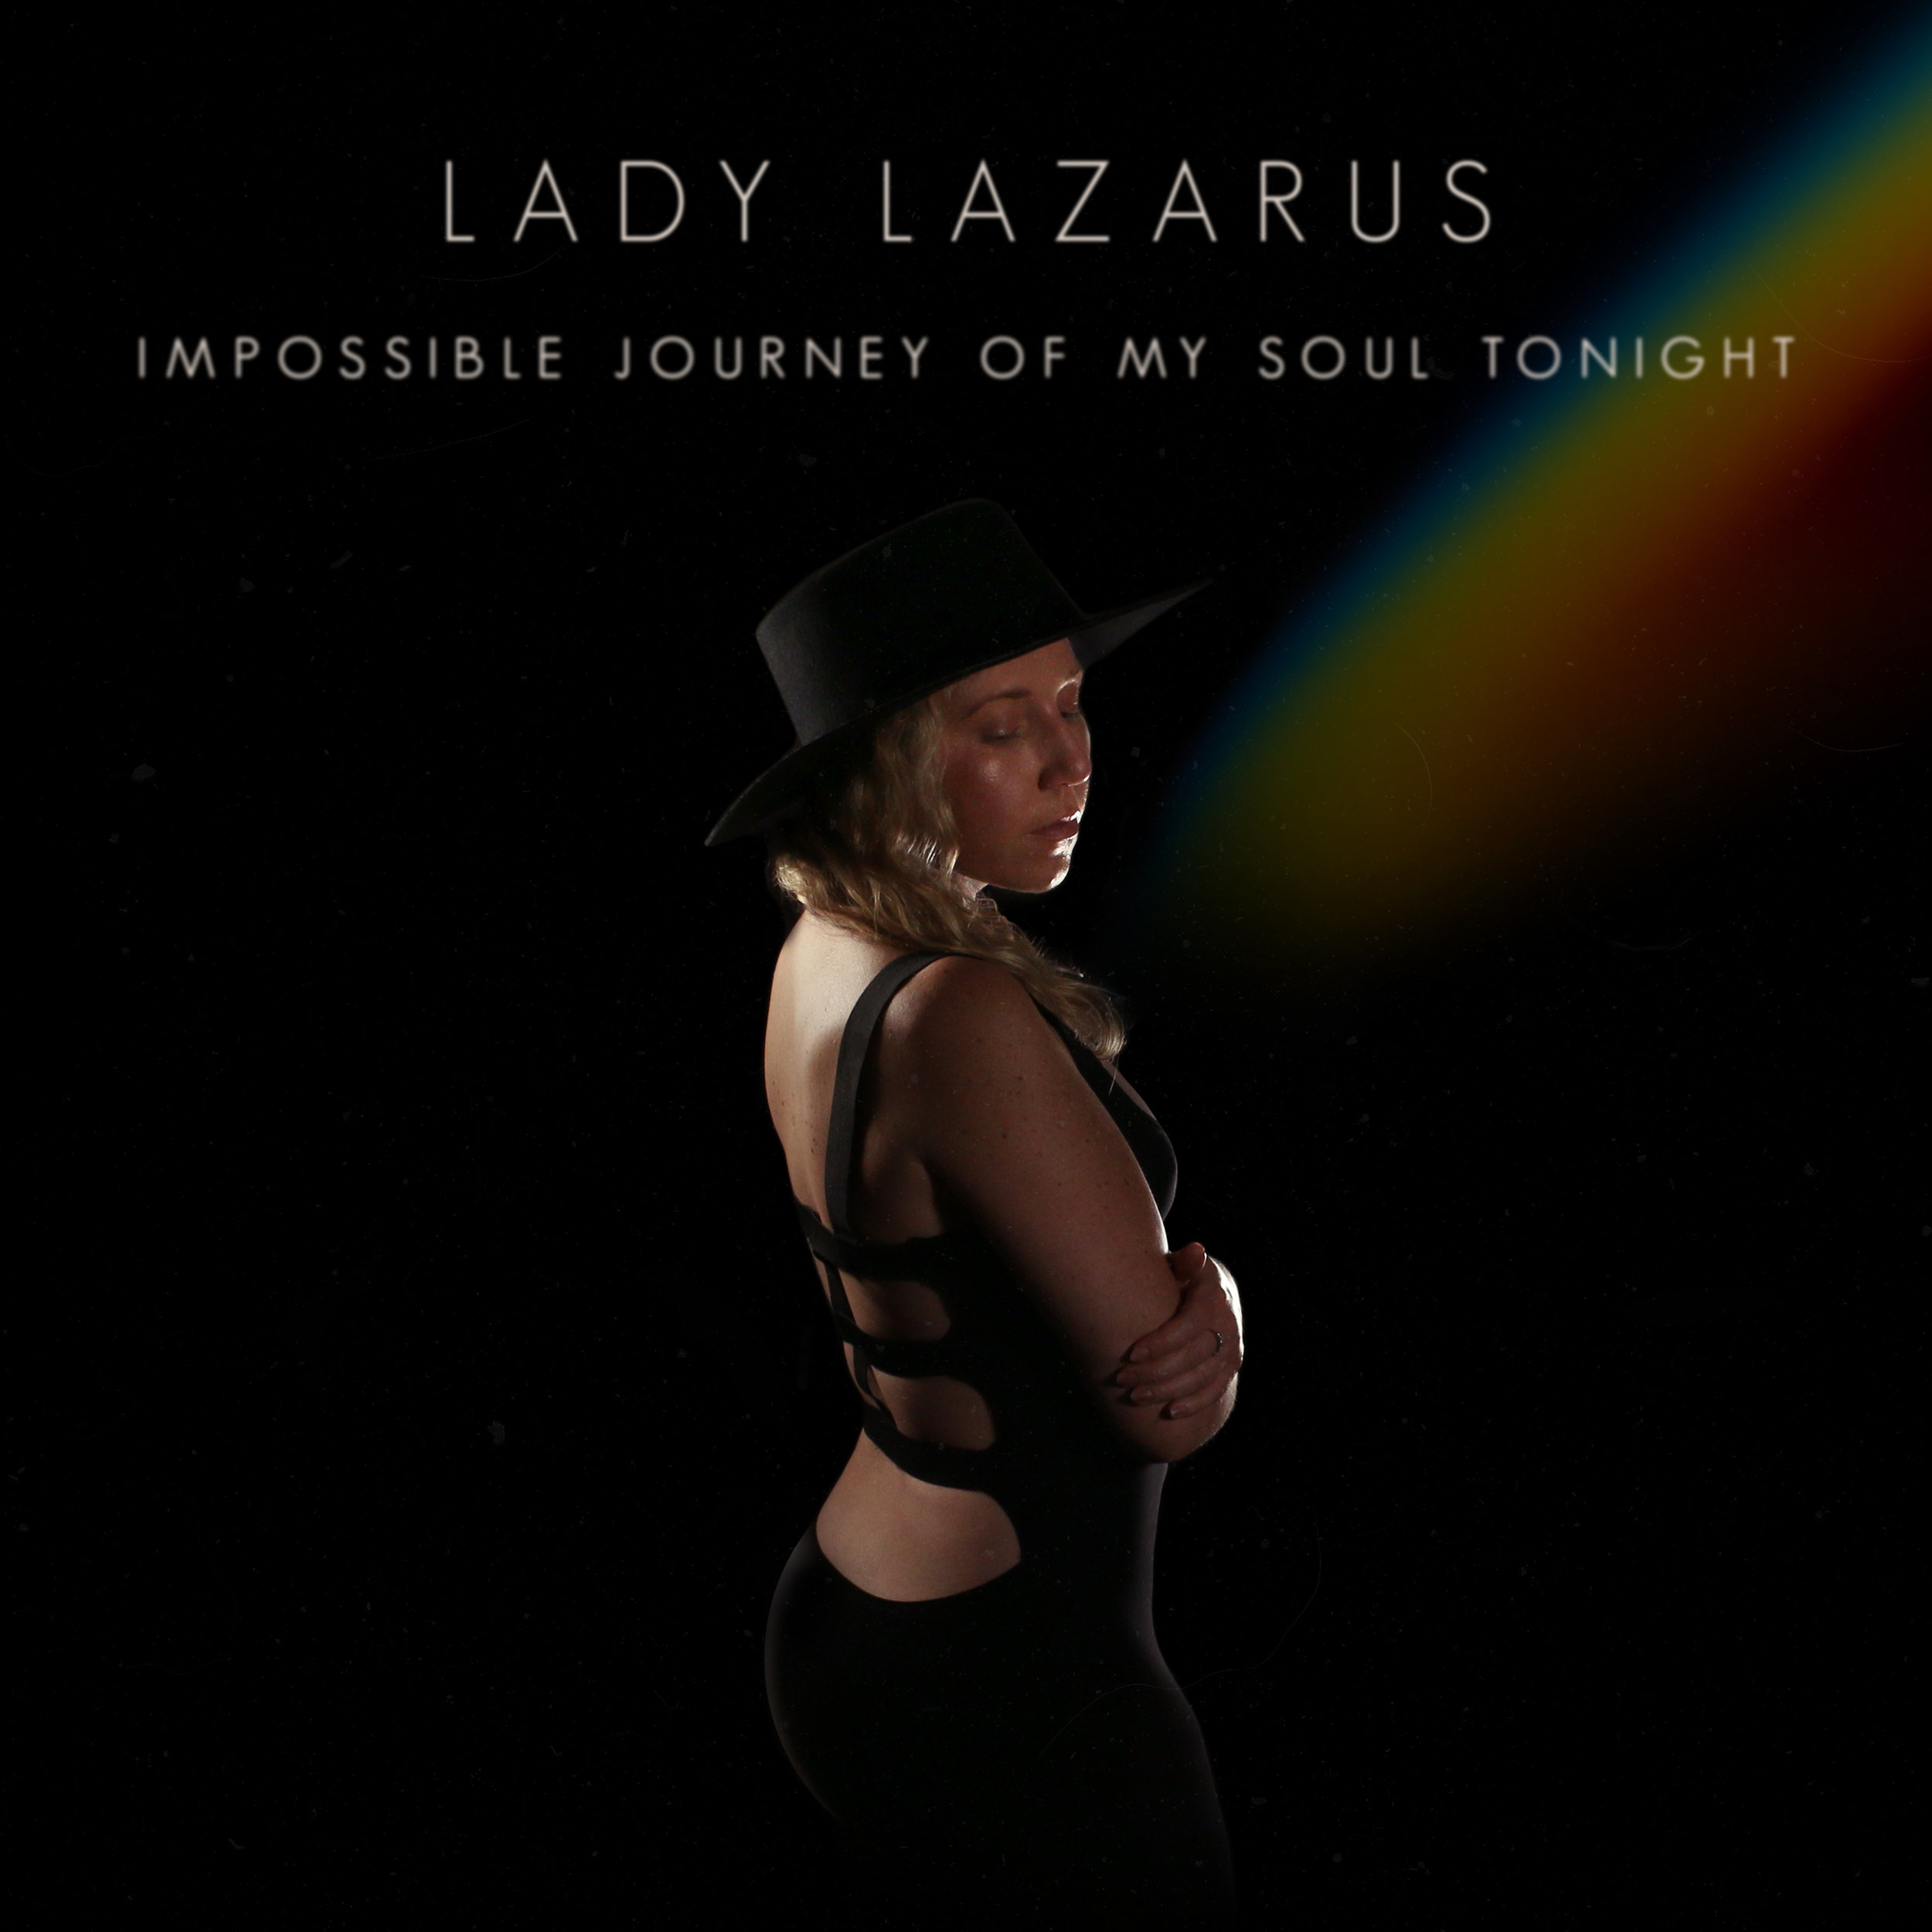 Lady_Lazarus-Impossible_Journey_Of_My_Soul_Tonight.jpg